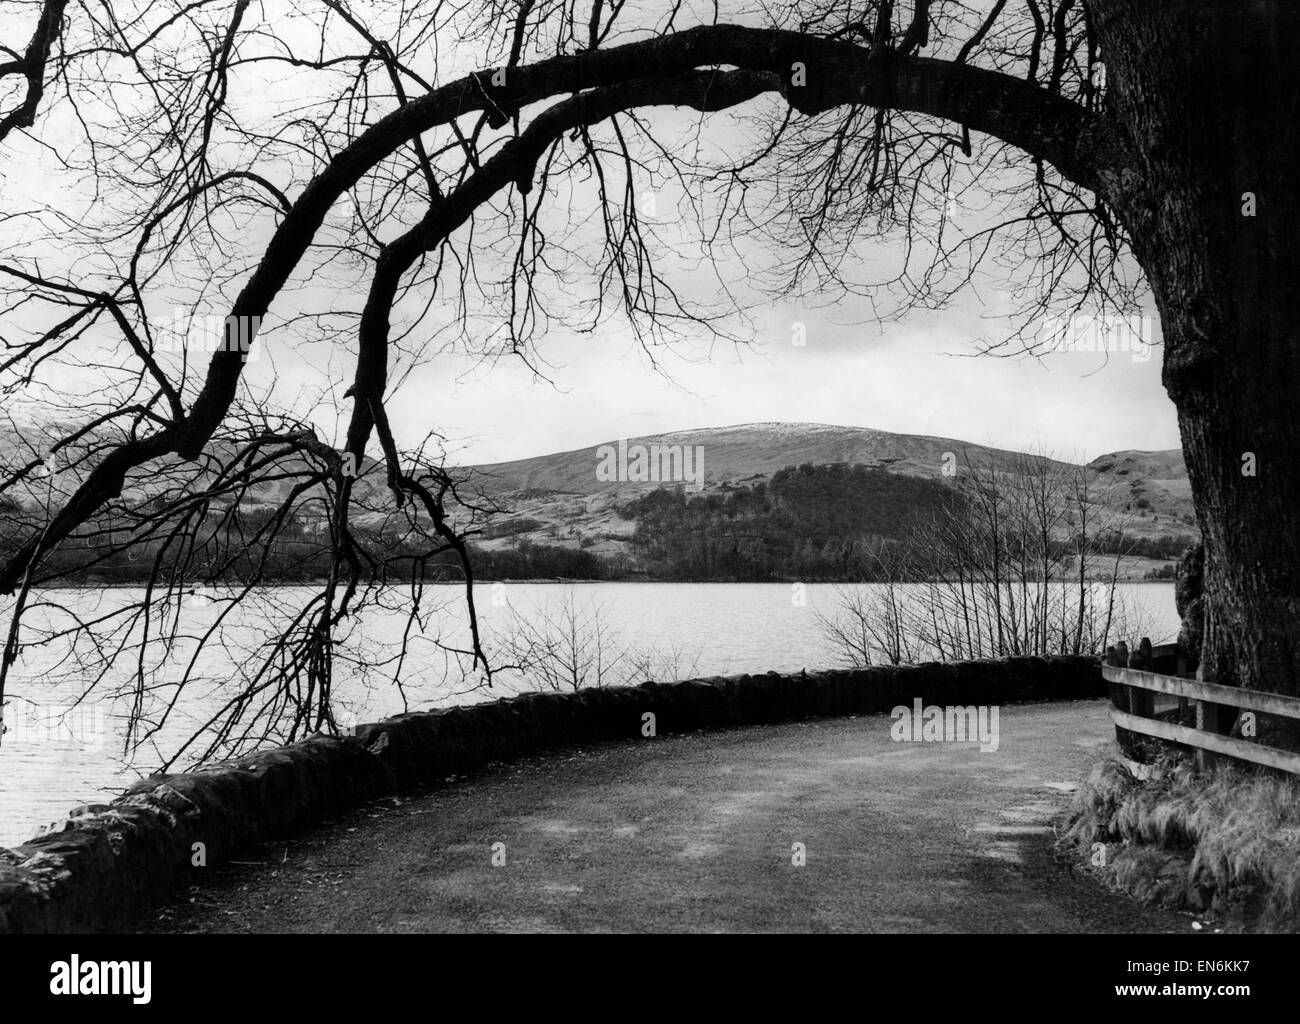 Roadside view of Loch Ard, a body of fresh water in the Loch Lomond and the Trossachs National Park, Stirling District, - Stock Image